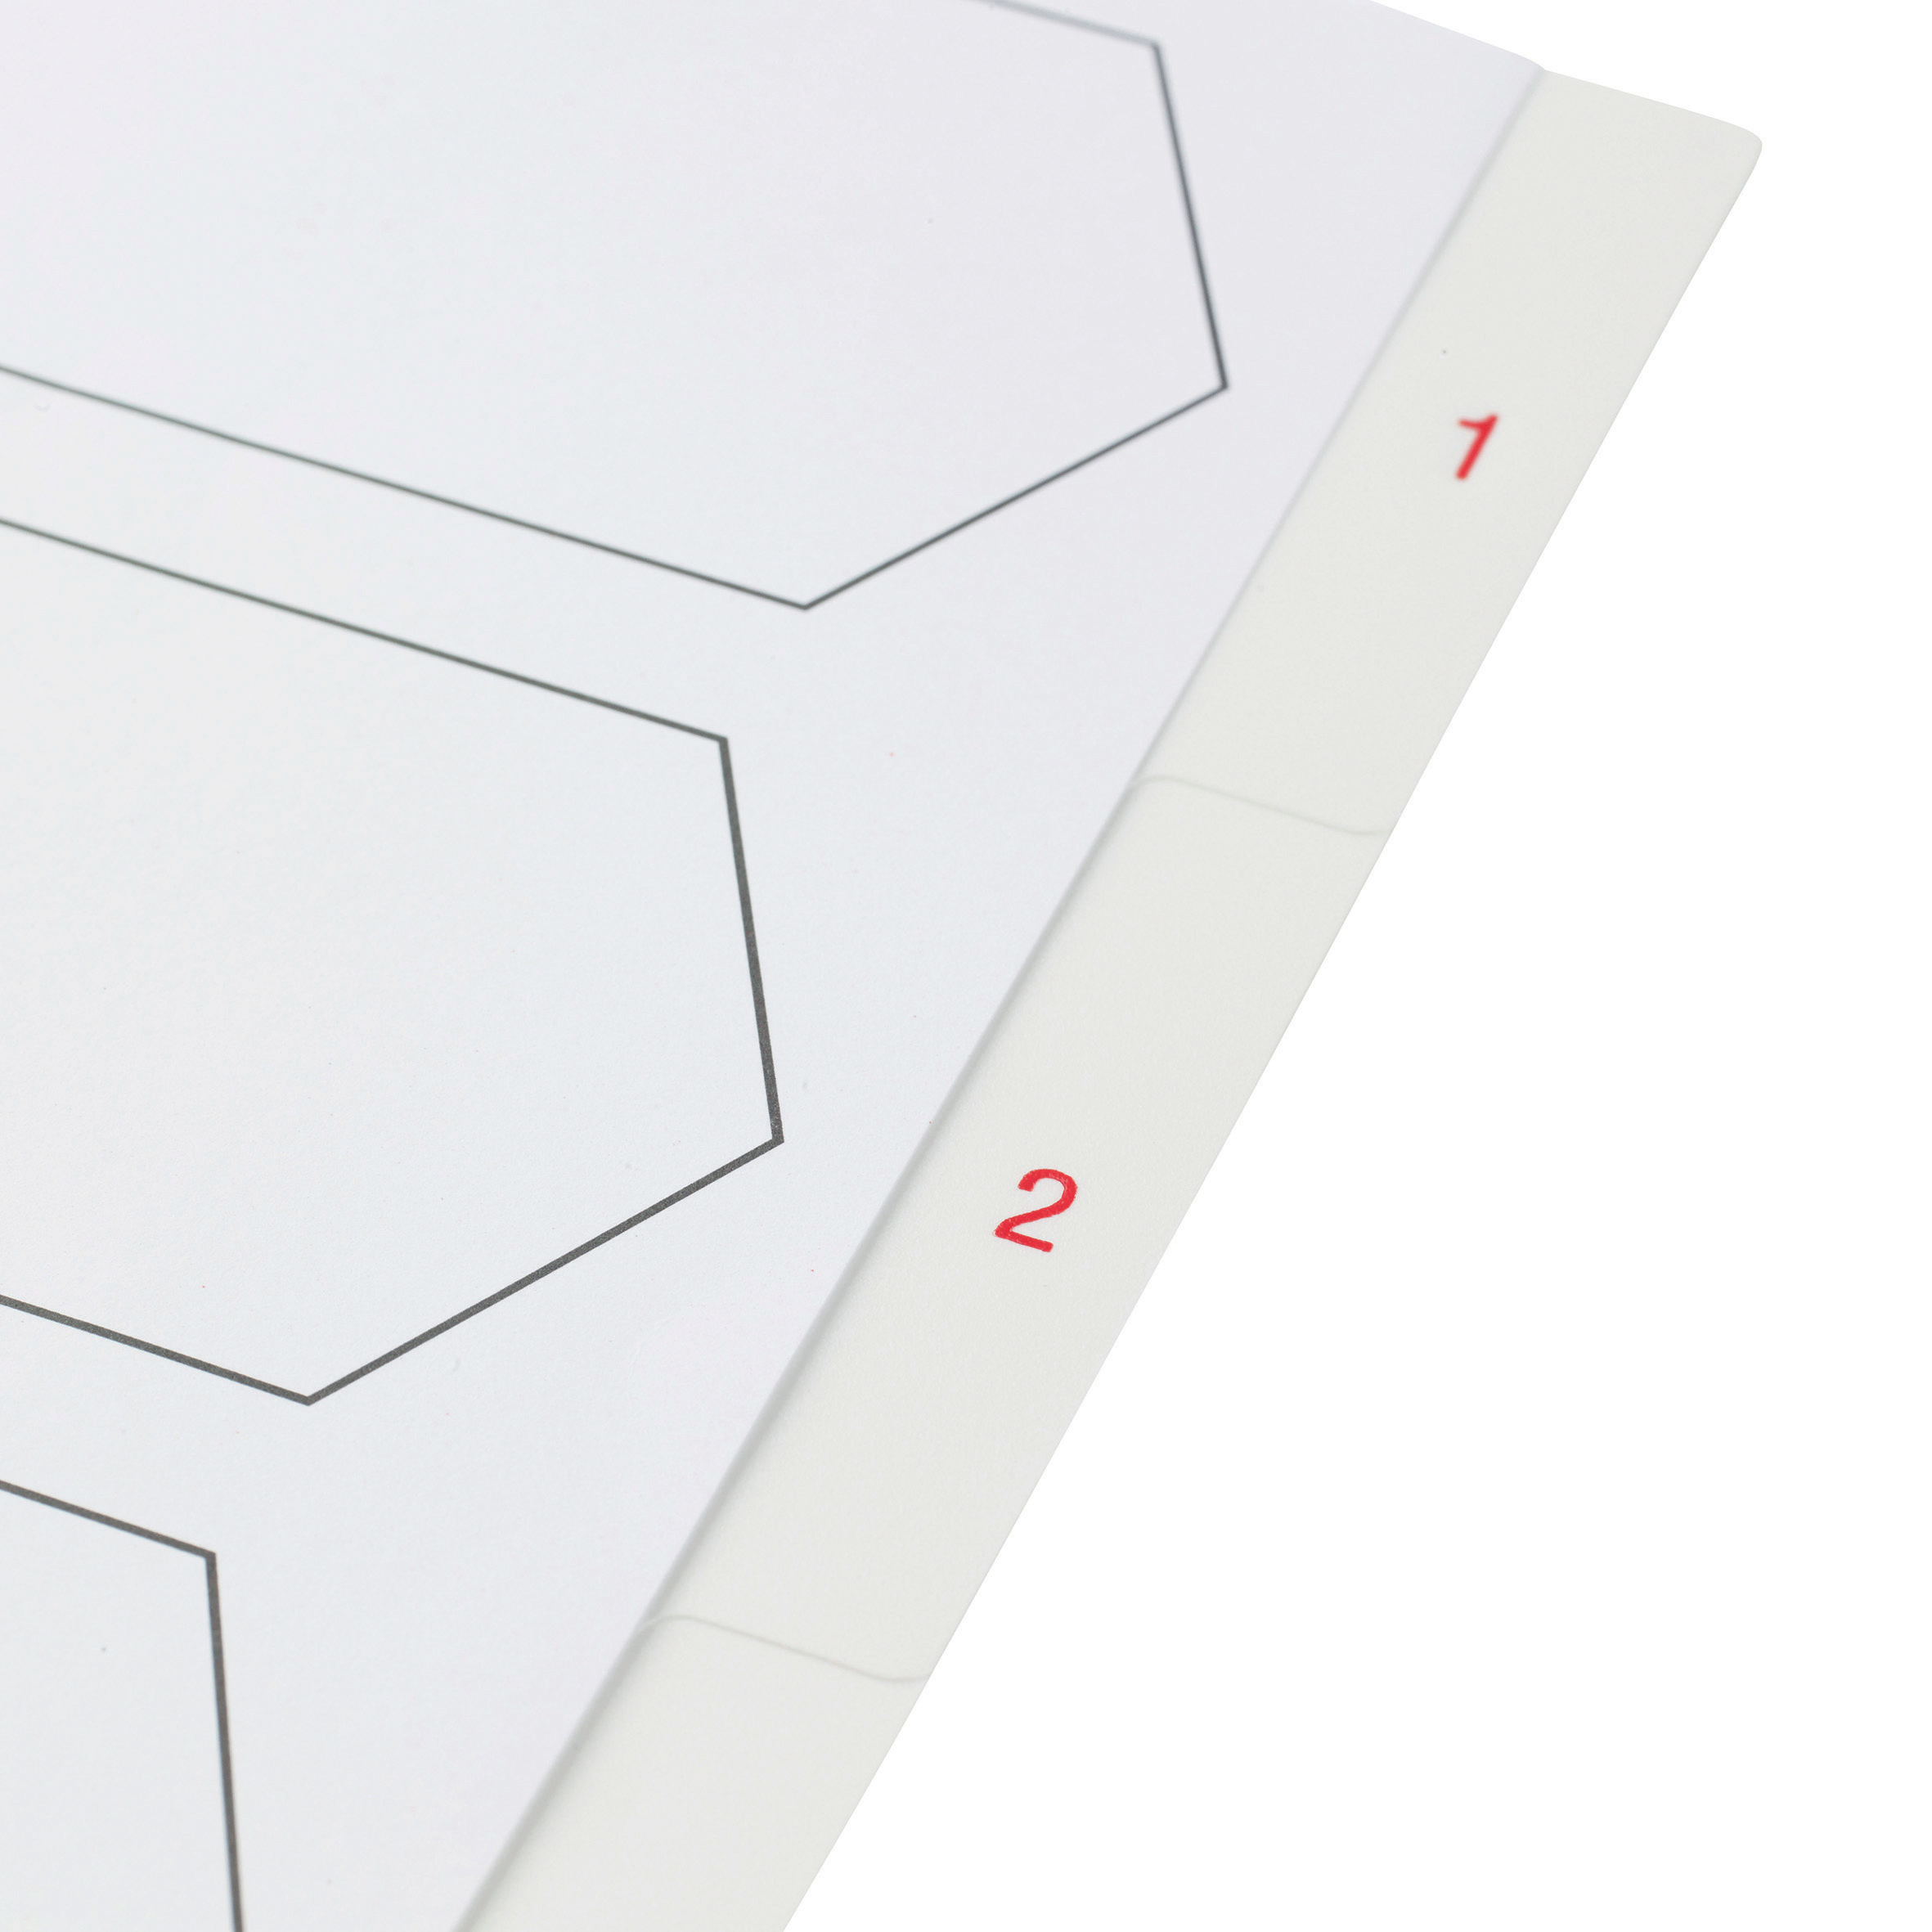 5 Star Elite Premium Index 1-5 Polypropylene Multipunched Reinforced Holes 120 Micron A4 White